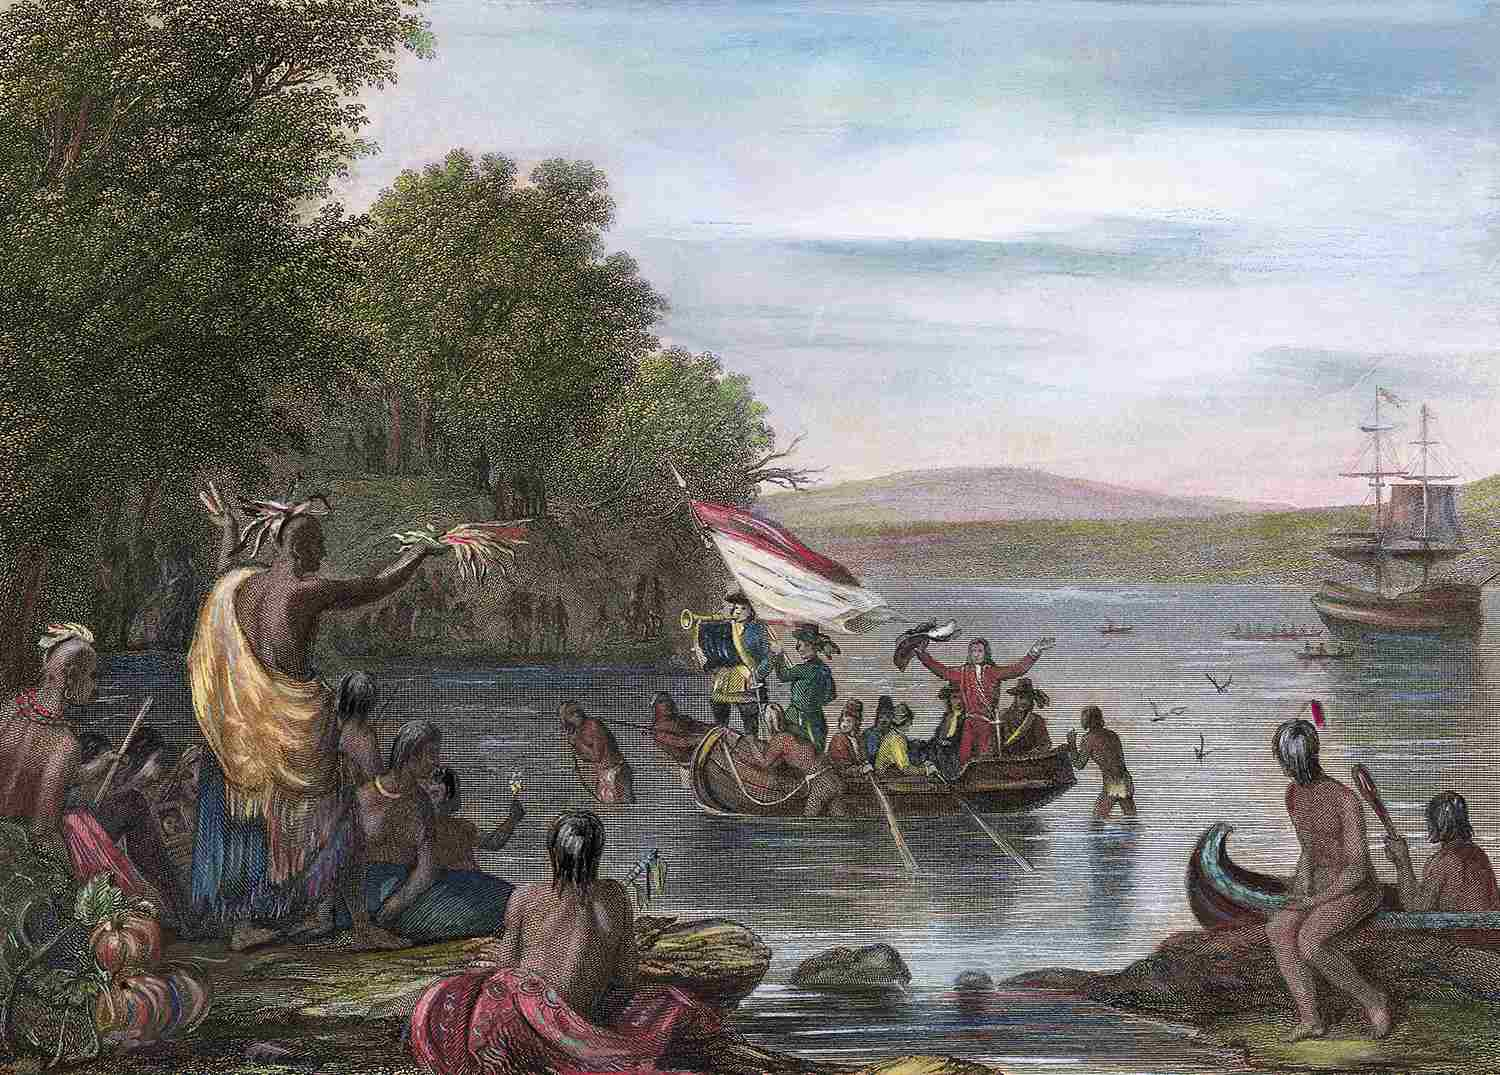 Henry Hudson Greeted by Native Americans